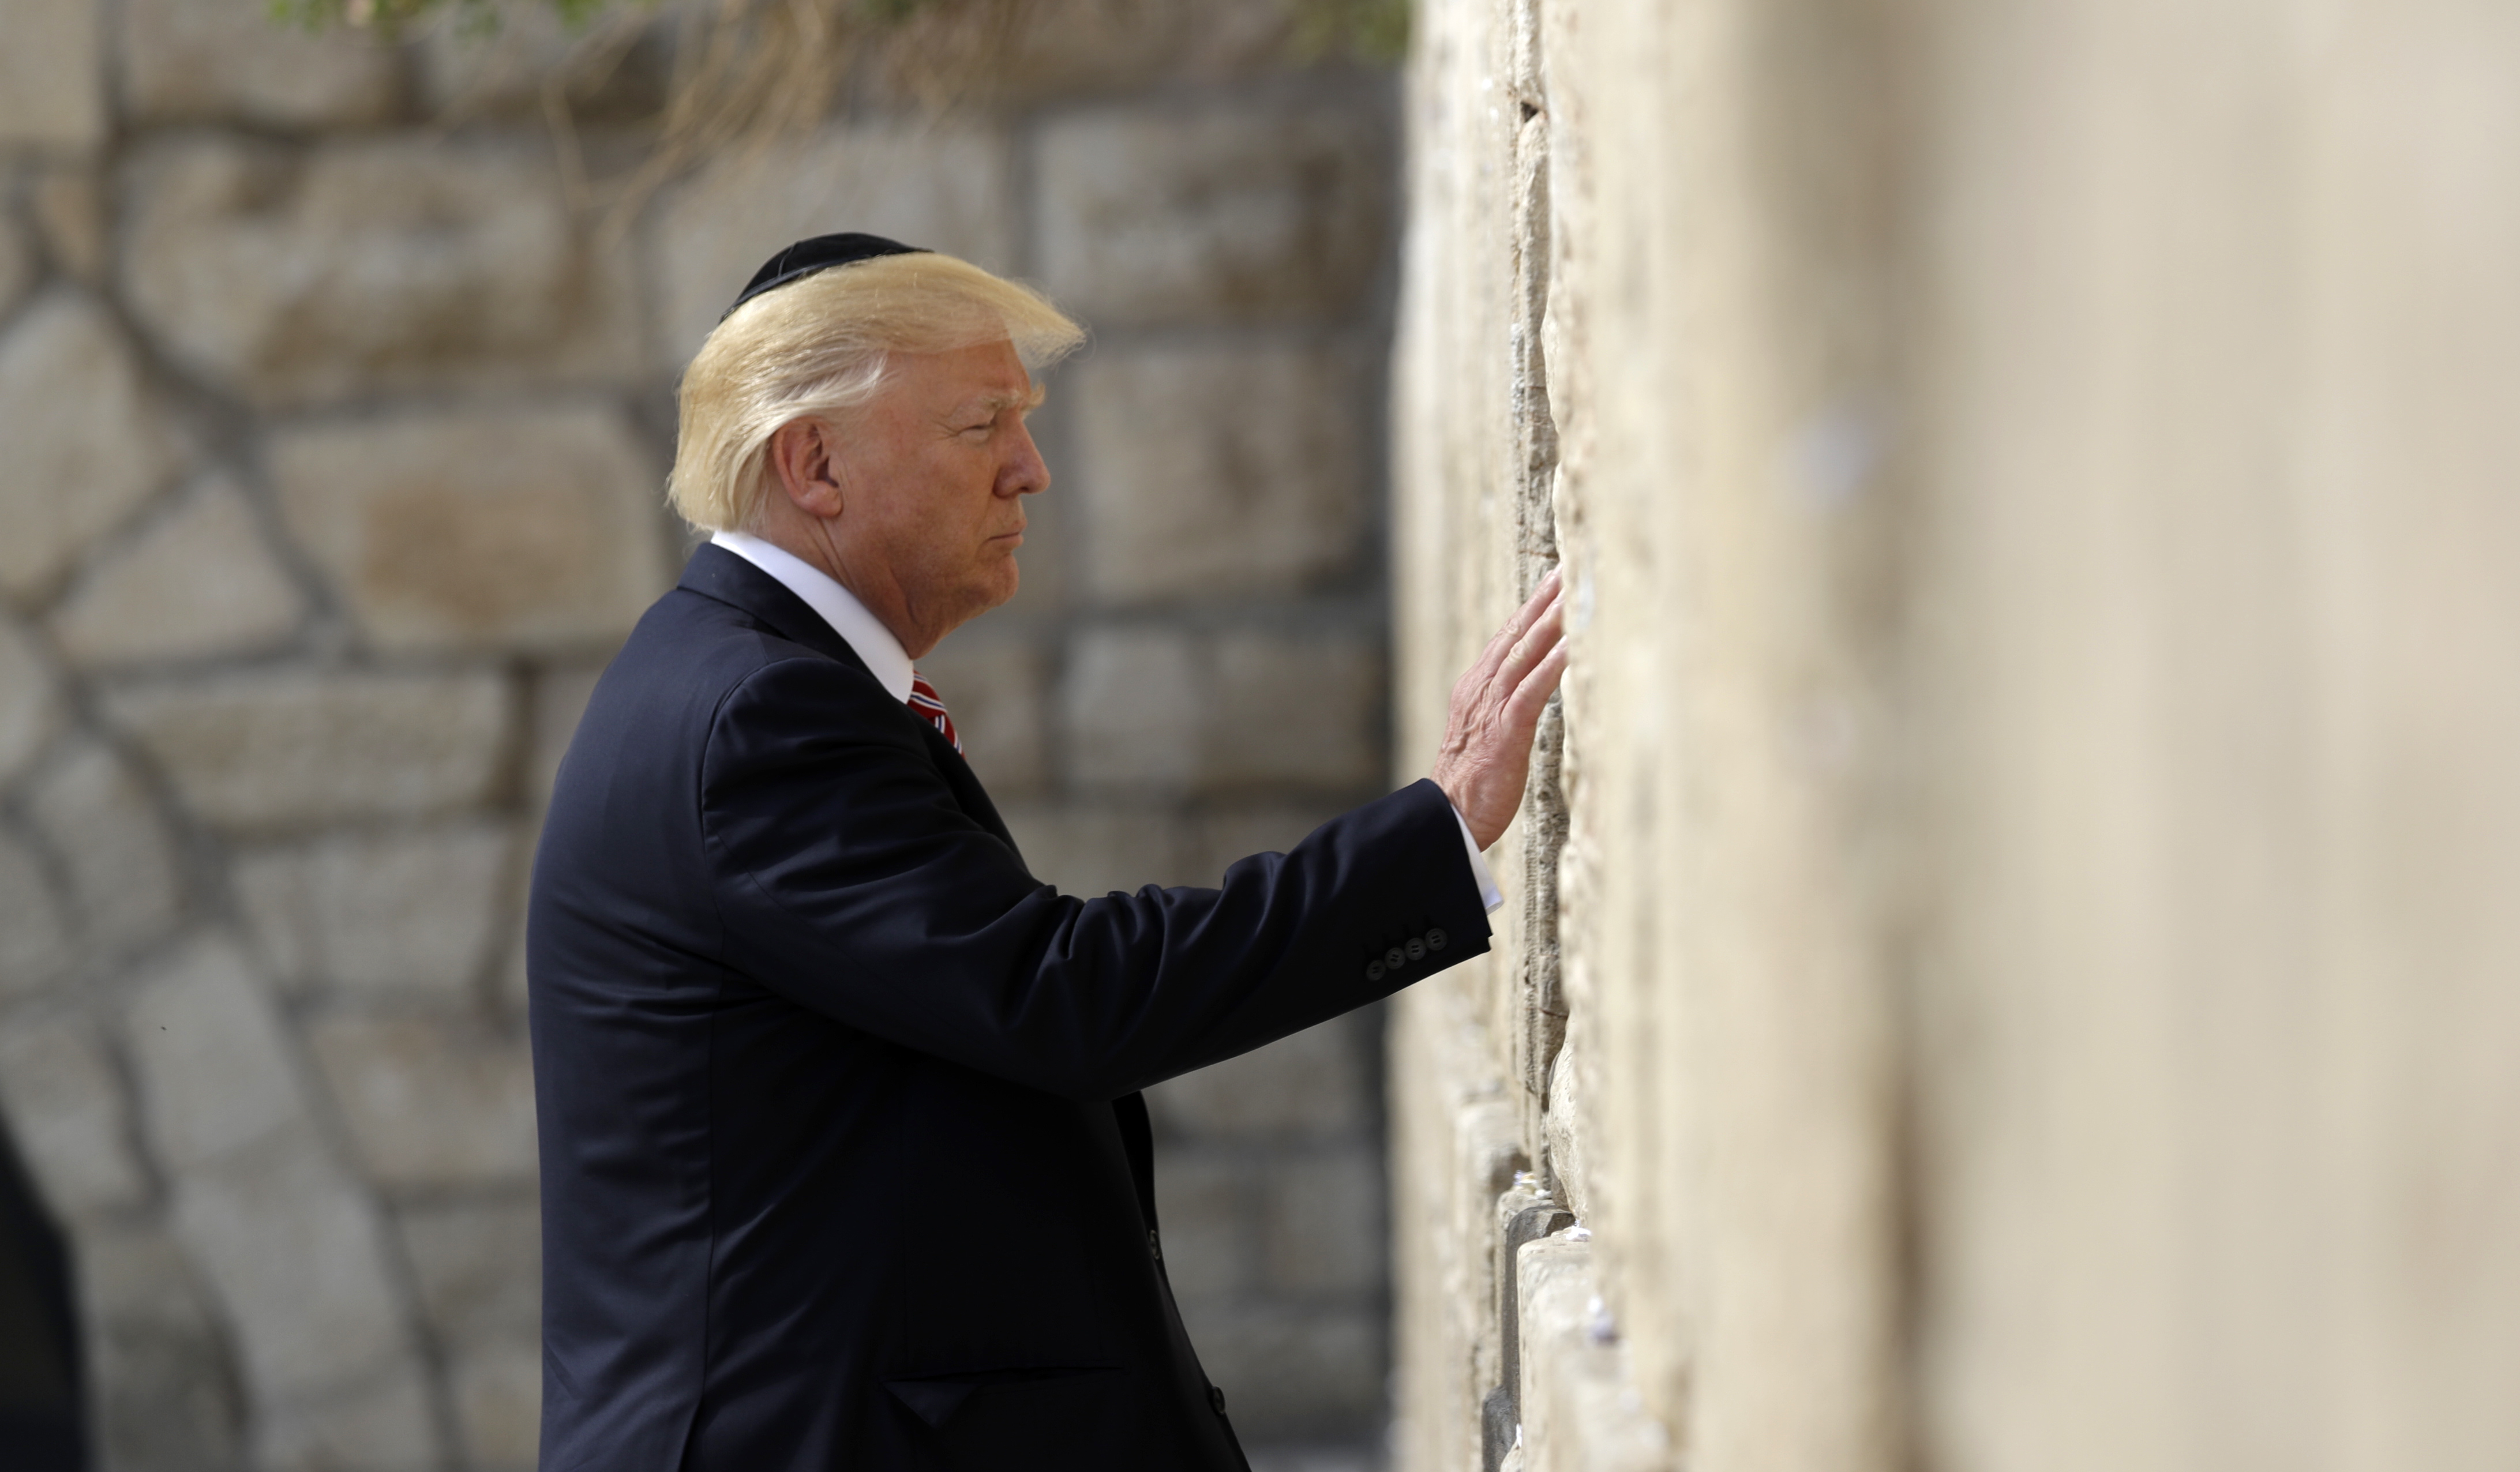 Trump heads to Israel in possible first arrival from Saudi